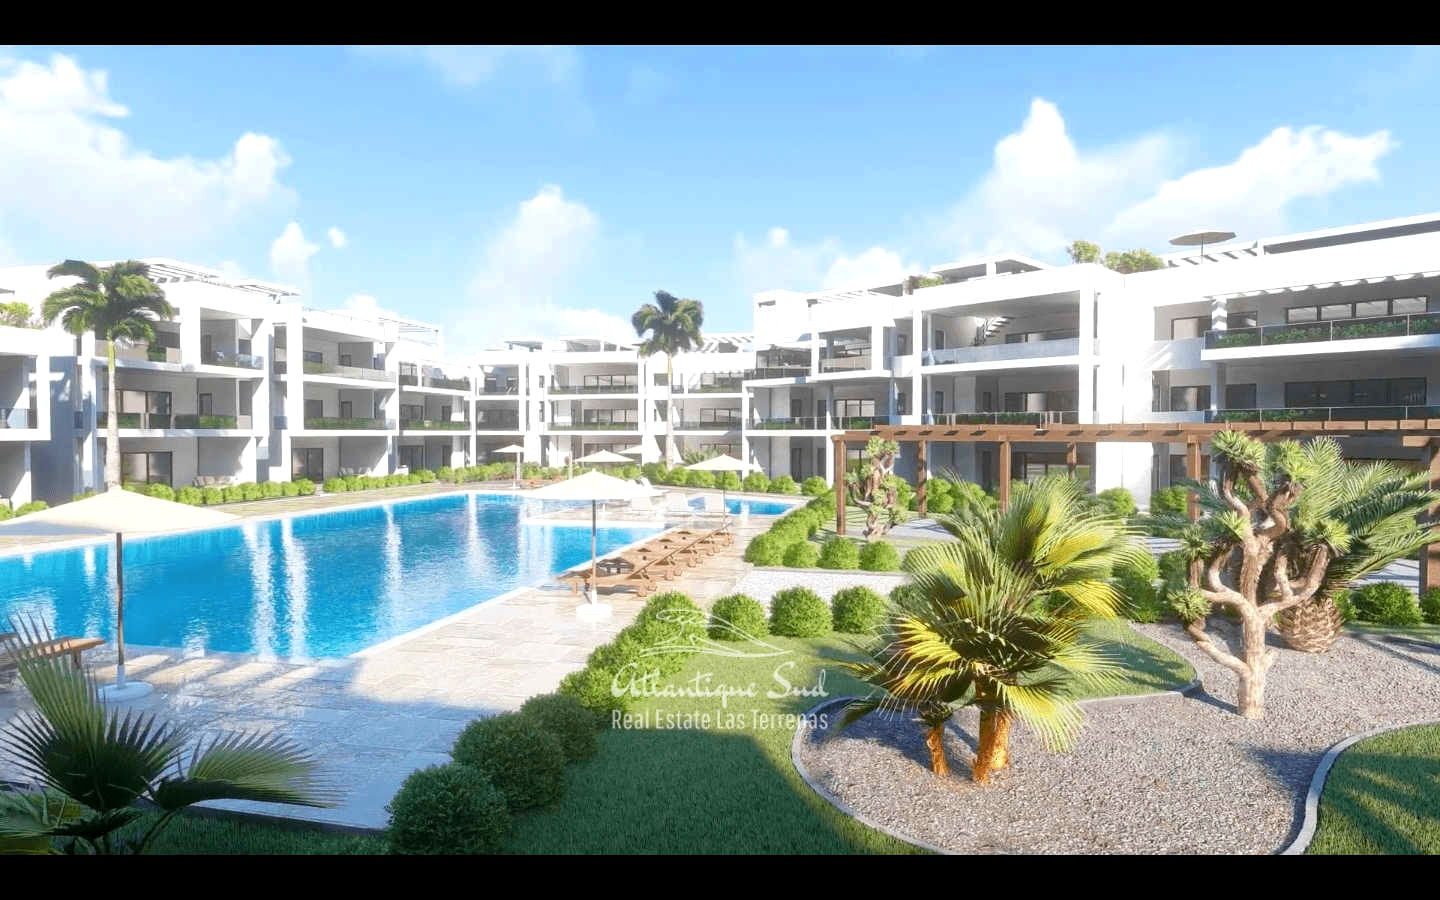 Condos for sale in Las Terrenas Dominican Republic 5.jpg